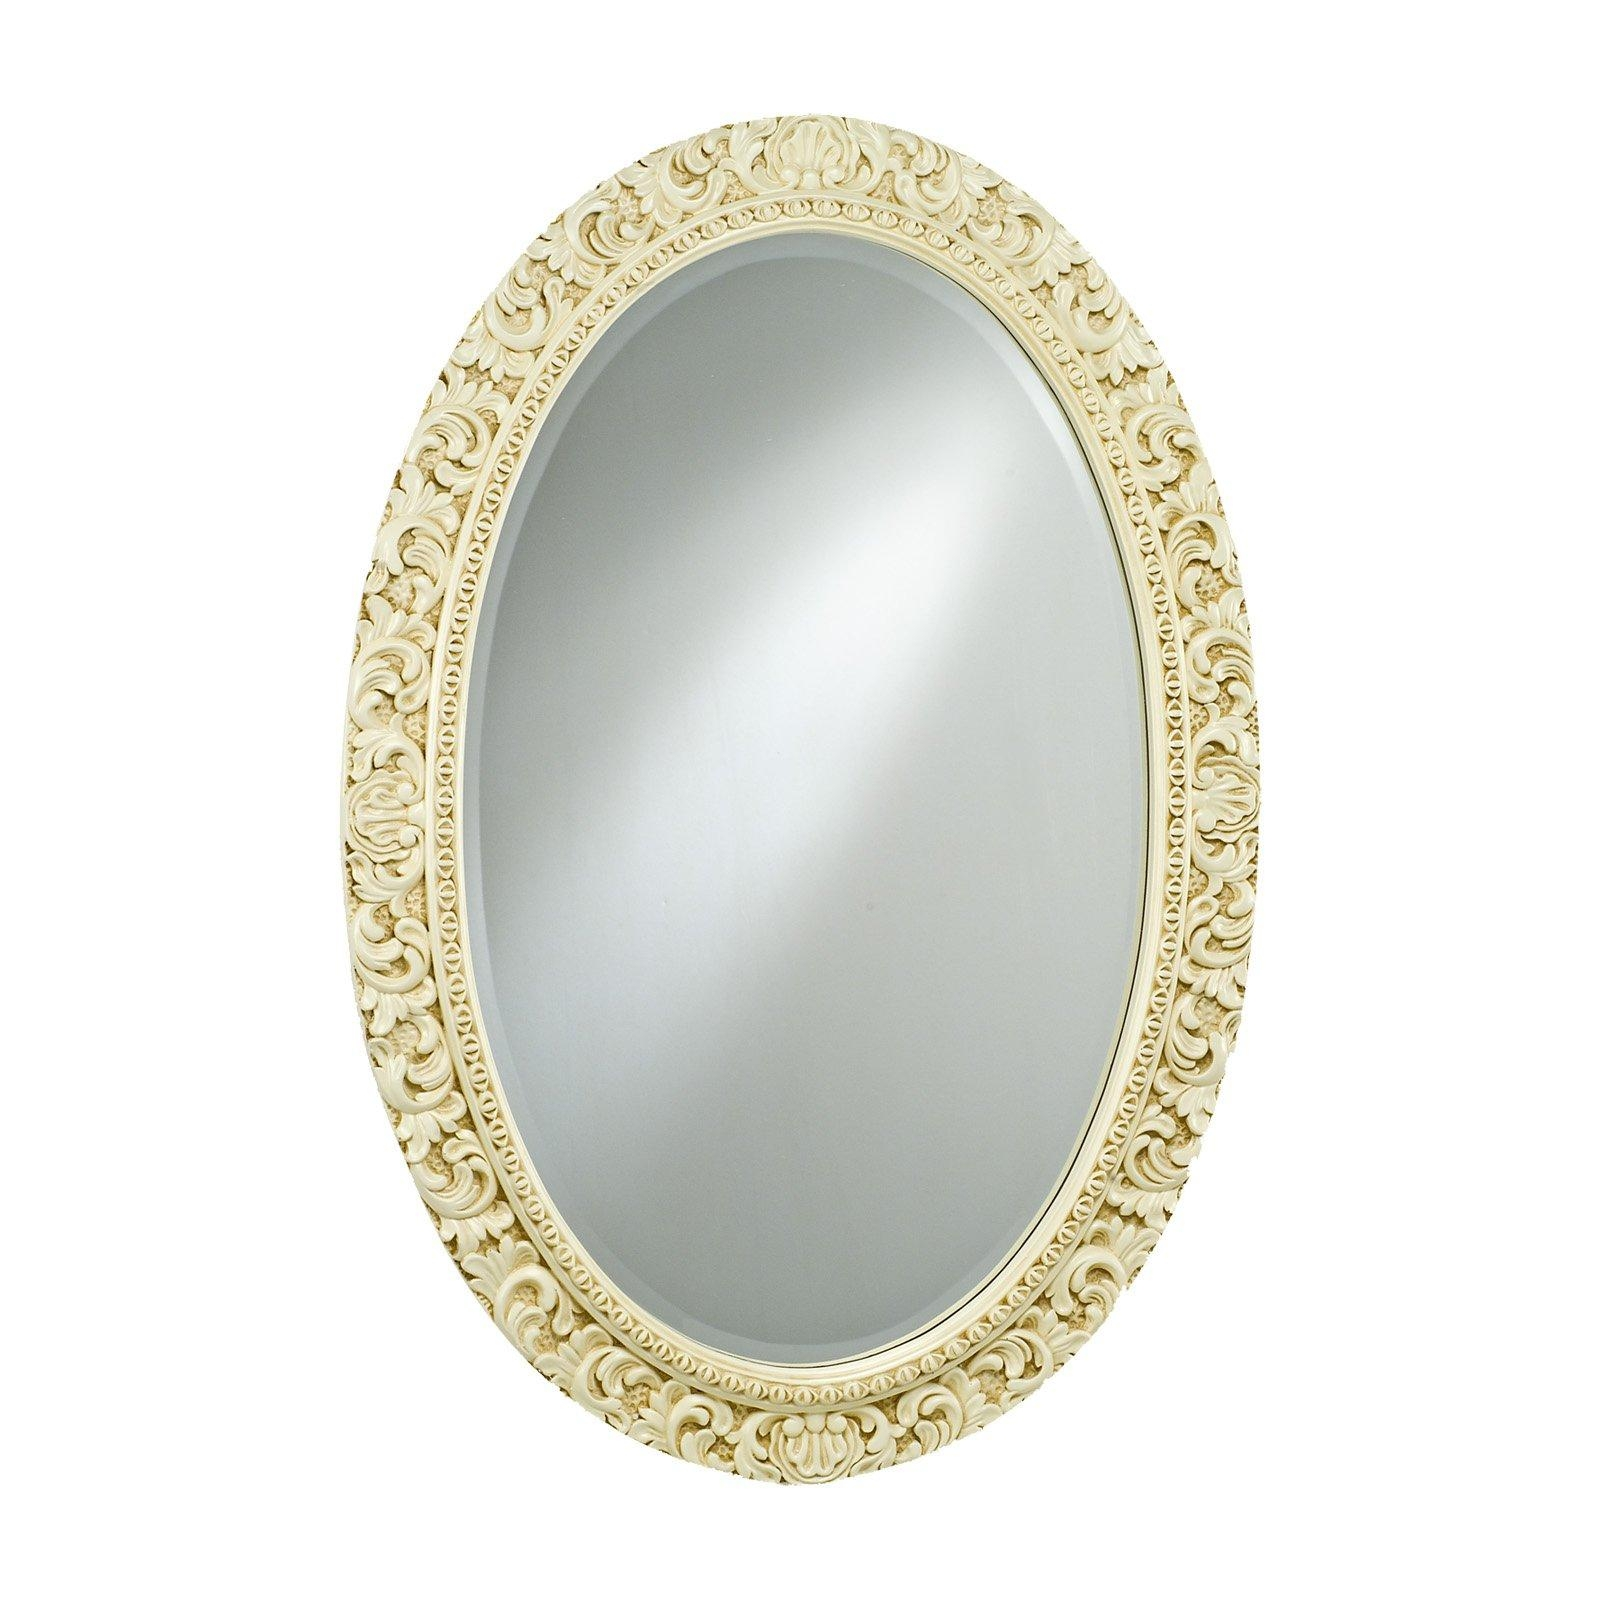 Timeless Tradition Ornate Oval Wall Mirror – 24W X 36H In In Ornate Oval Mirrors (Photo 8 of 20)